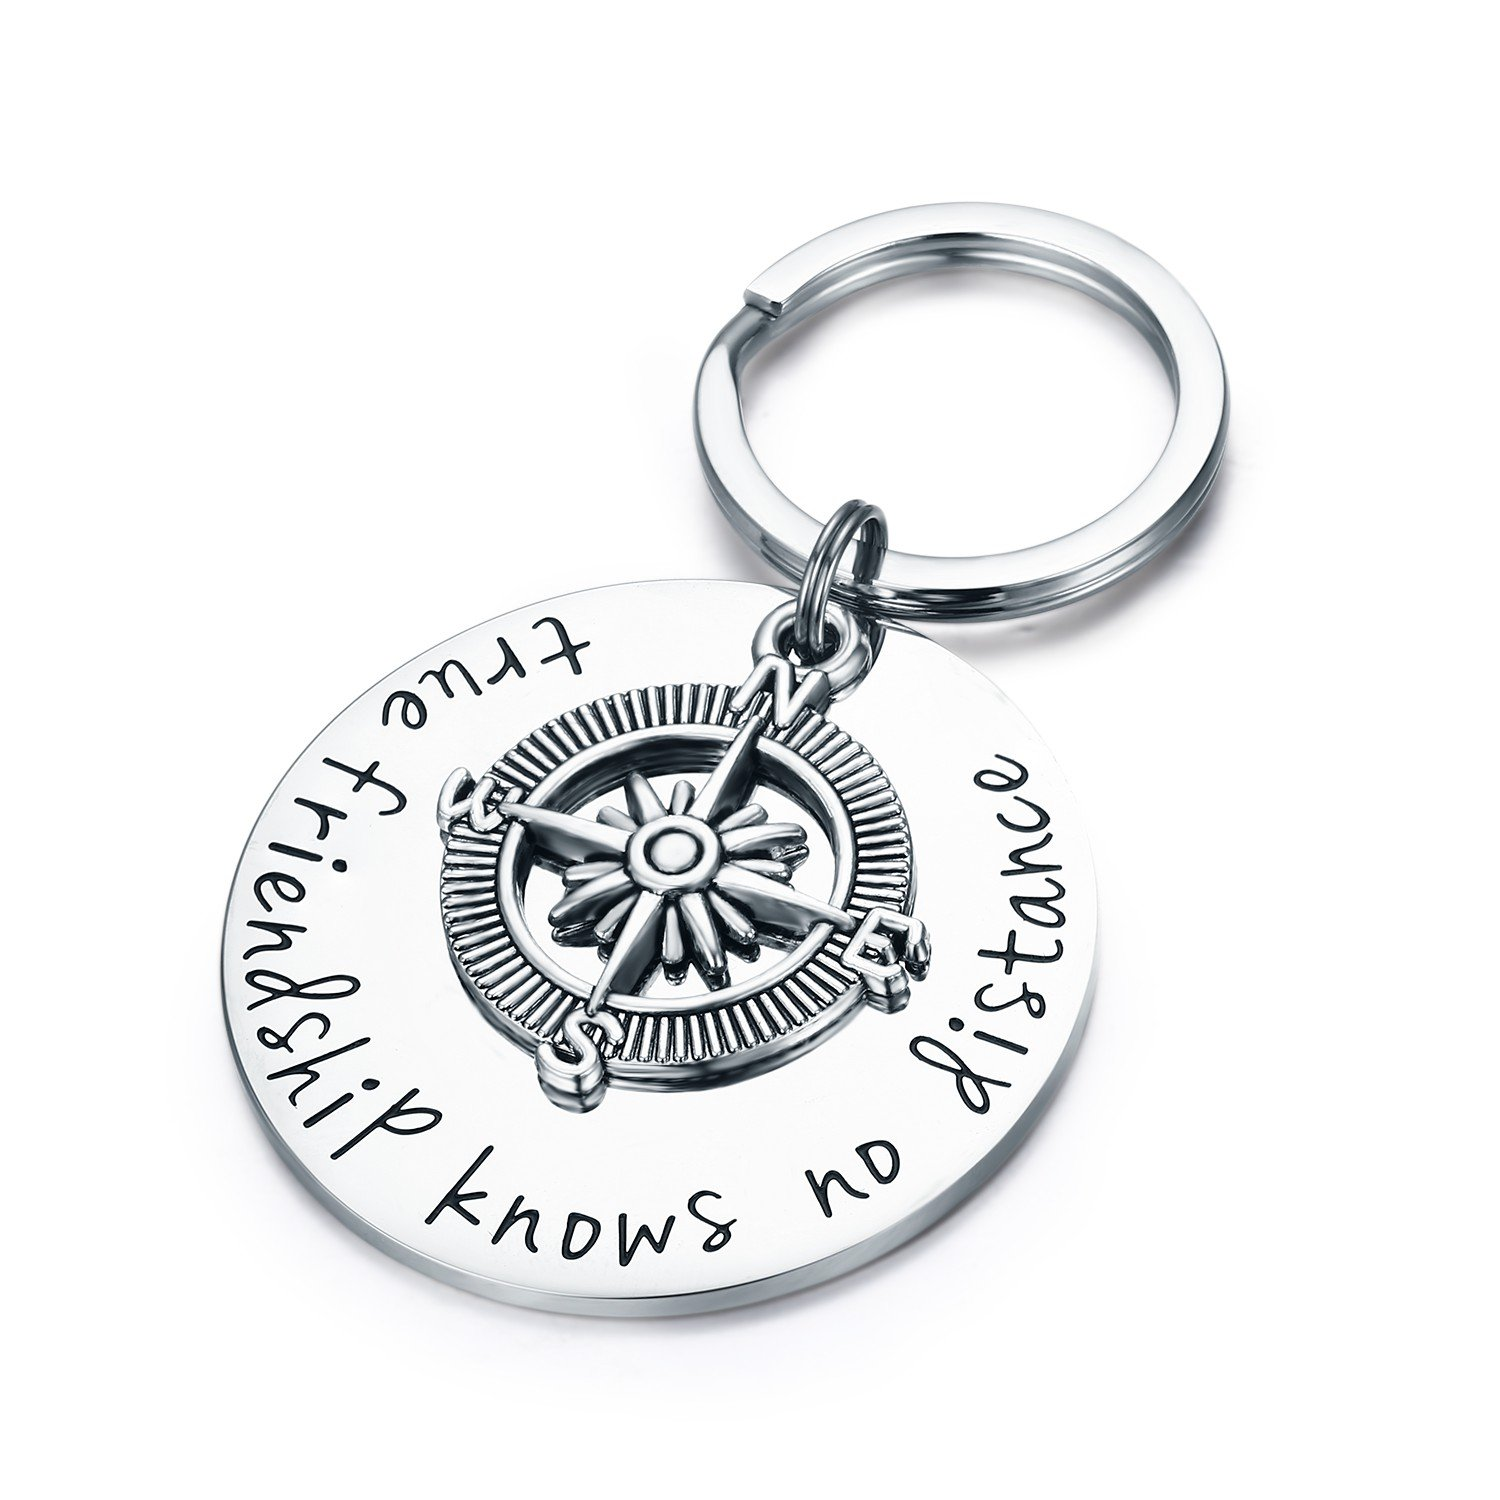 Udobuy Best Friend Keychain - True Friendship Knows No Distance Compass Keychain Long Distance Relationship Gifts by Udobuy